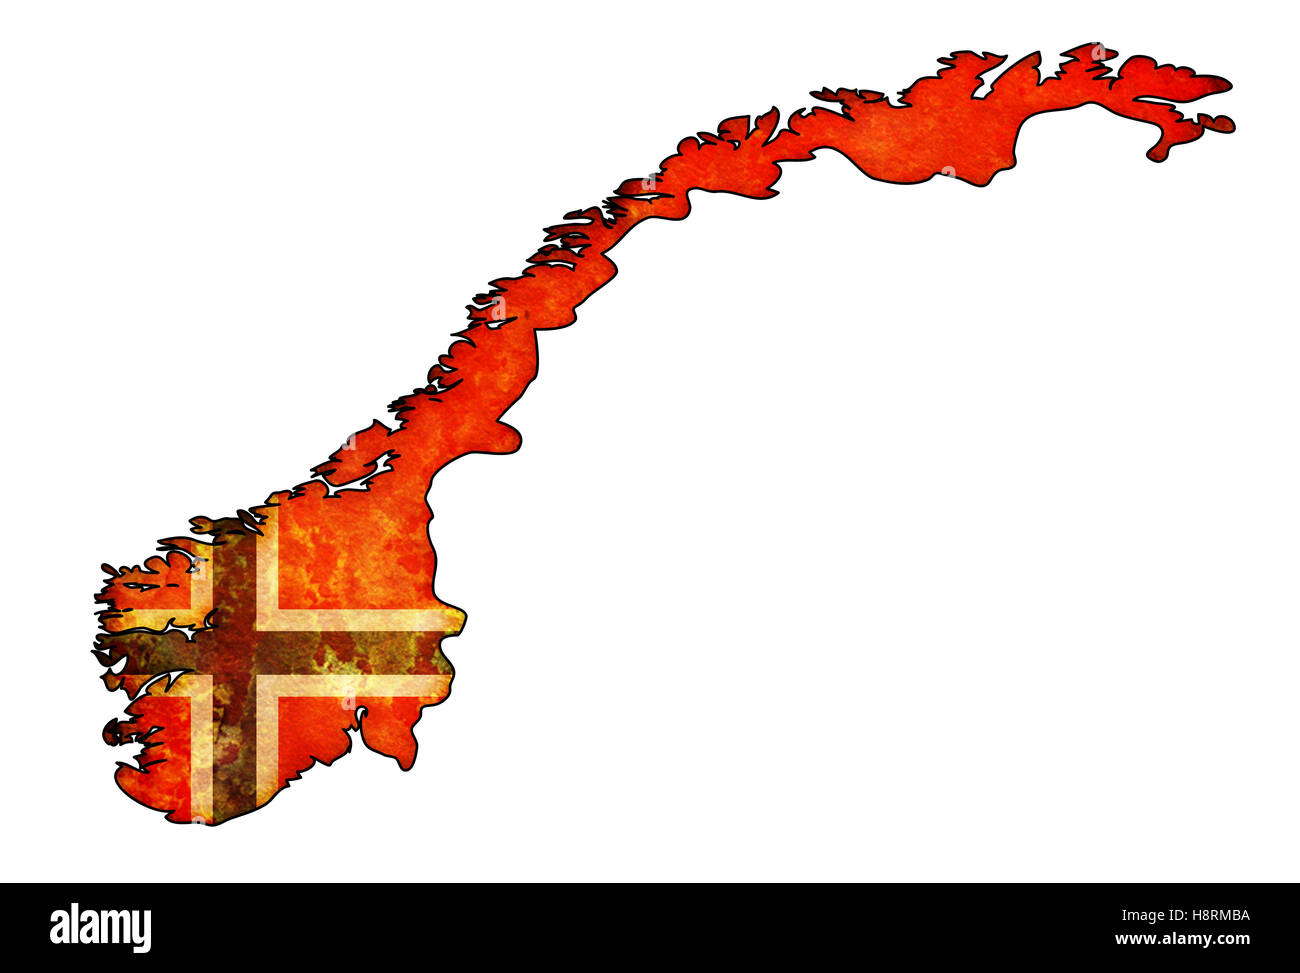 Outline Map Of Norway Stock Photos Outline Map Of Norway Stock - Norway map outline